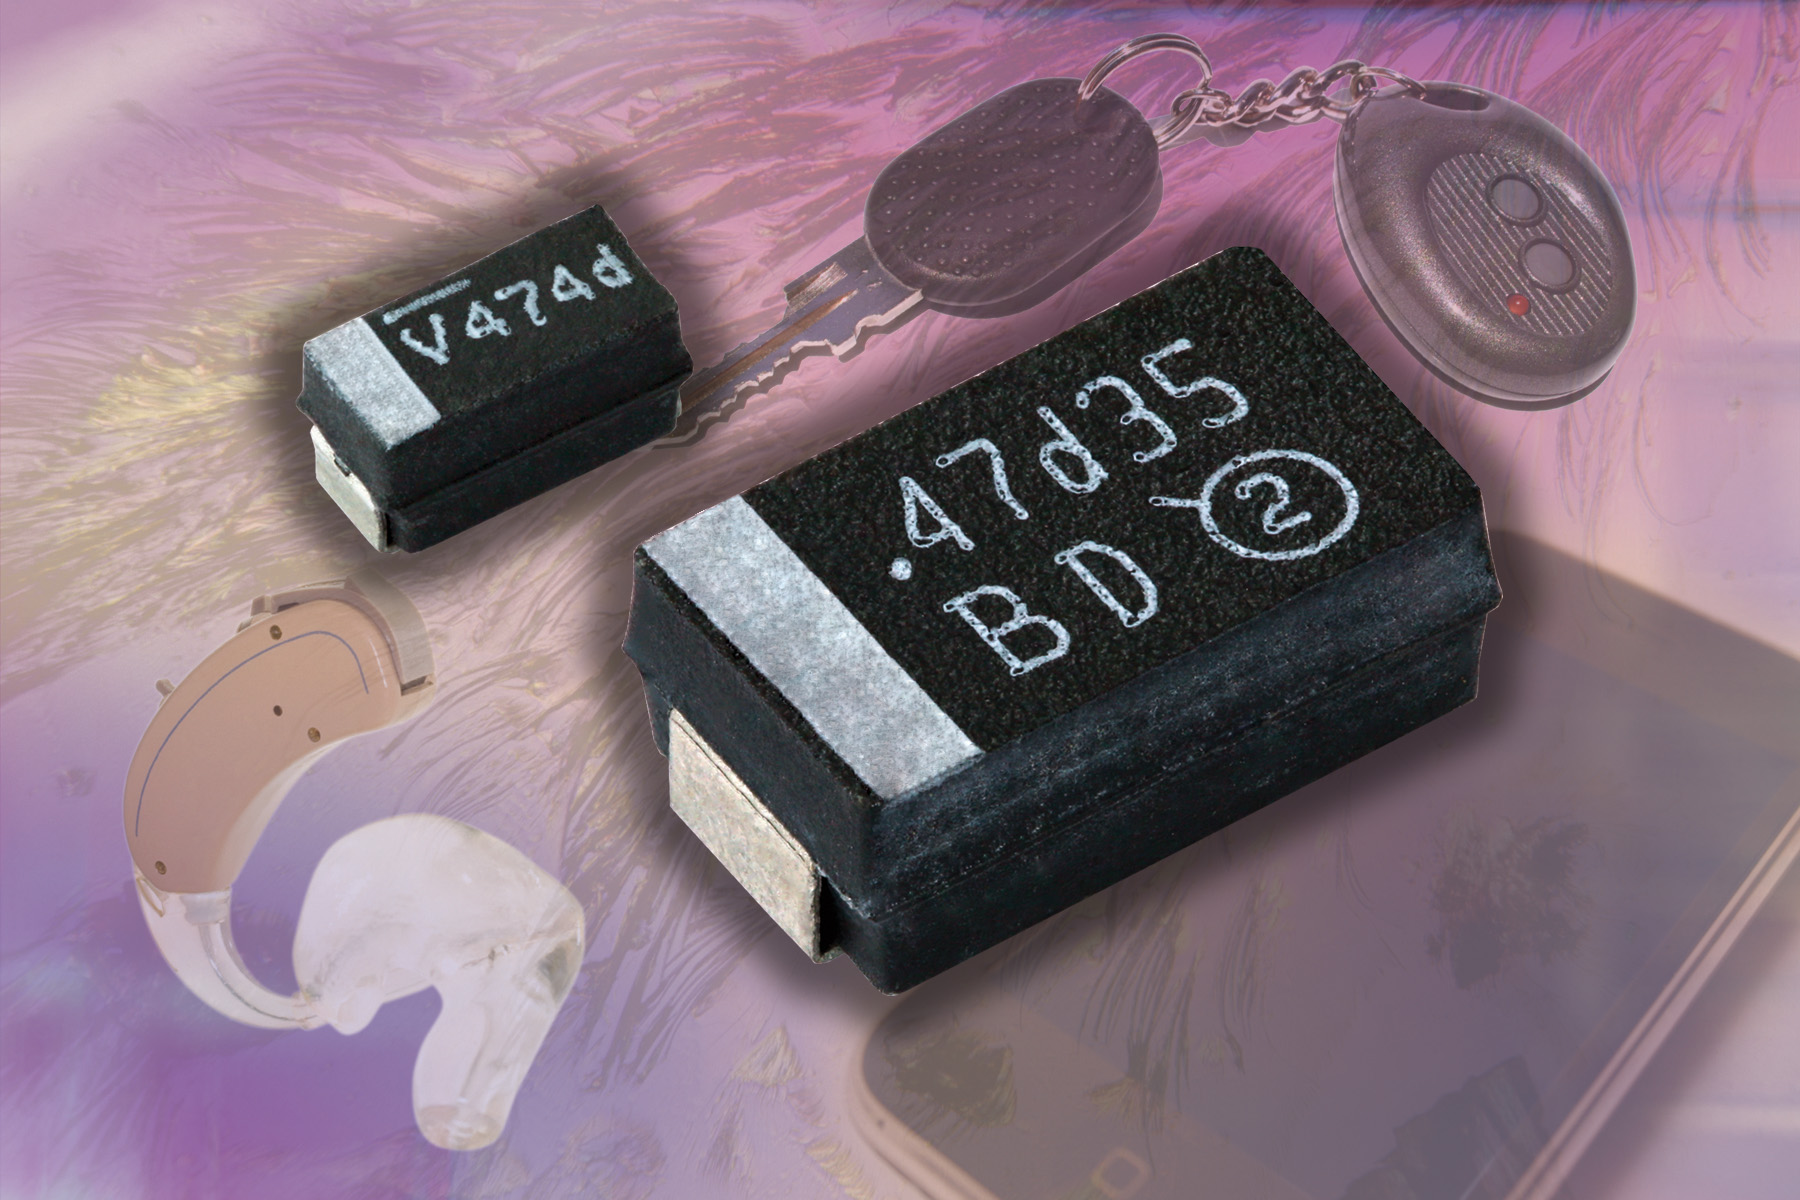 New Vishay SpragueTANTAMOUNT™ surface-mount moulded tantalum chip capacitors extend battery life of portable devices – from TTI Inc.